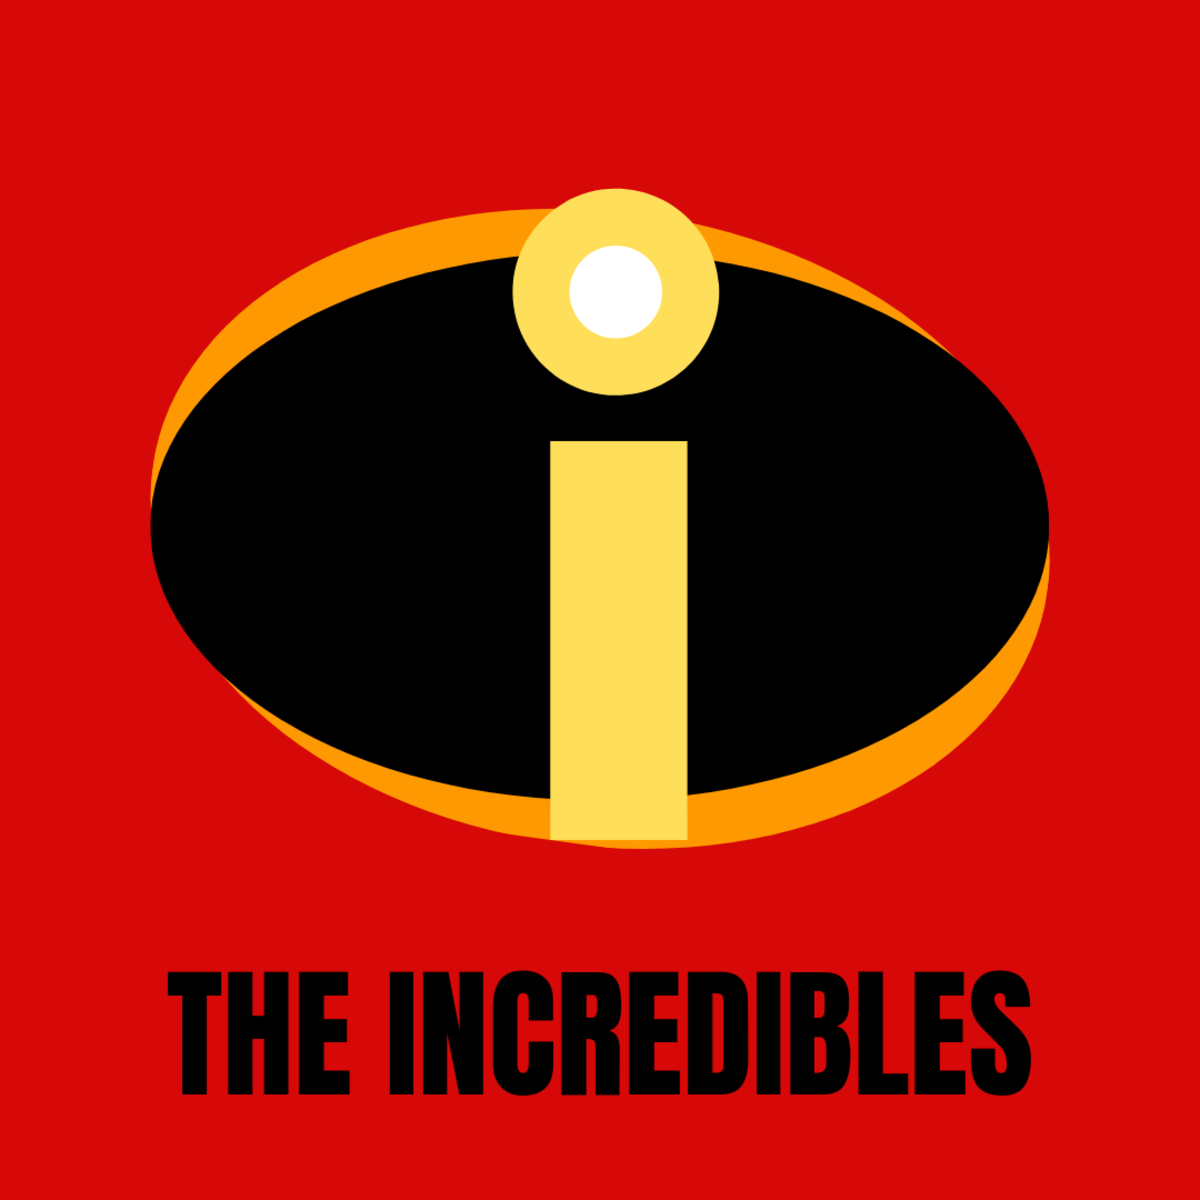 300+ Super Cool Superhero Names | HobbyLark